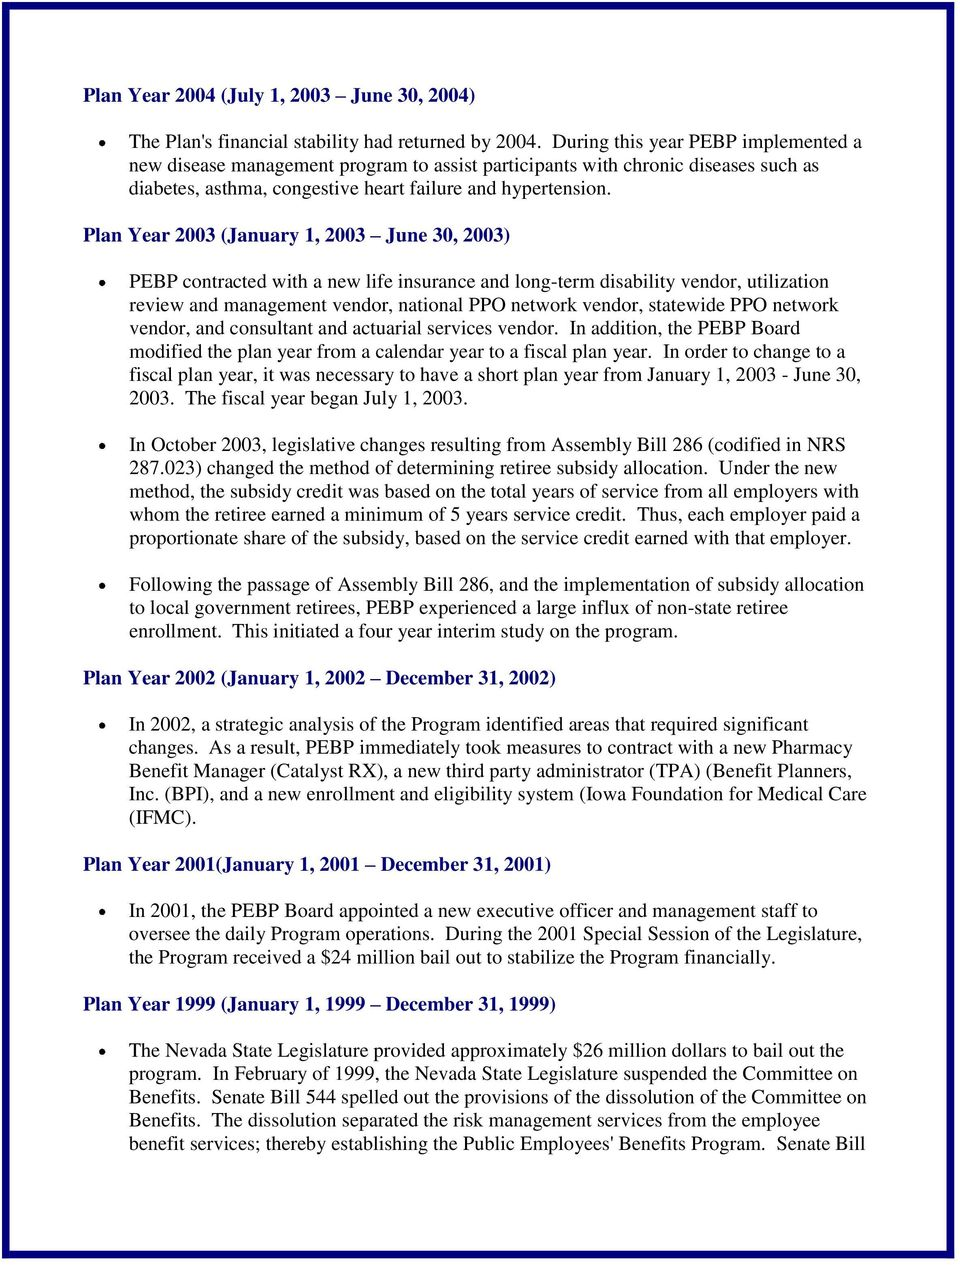 Plan Year 2003 (January 1, 2003 June 30, 2003) PEBP contracted with a new life insurance and long-term disability vendor, utilization review and management vendor, national PPO network vendor,